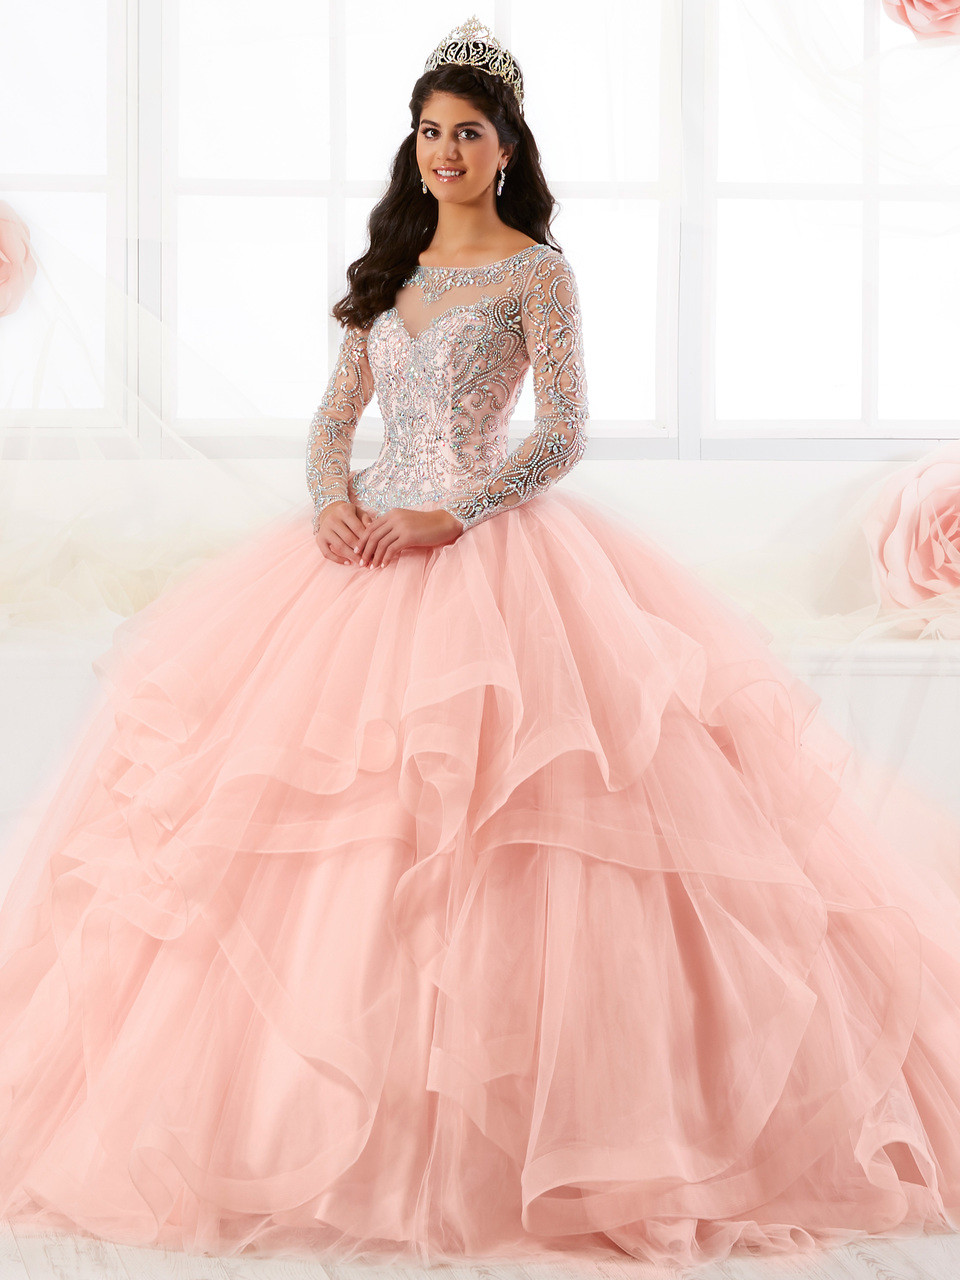 4bee5c6b7958 Illusion Bateau Neckline Tiffany Quinceanera Long Sleeved Ball Gown Dress  26904